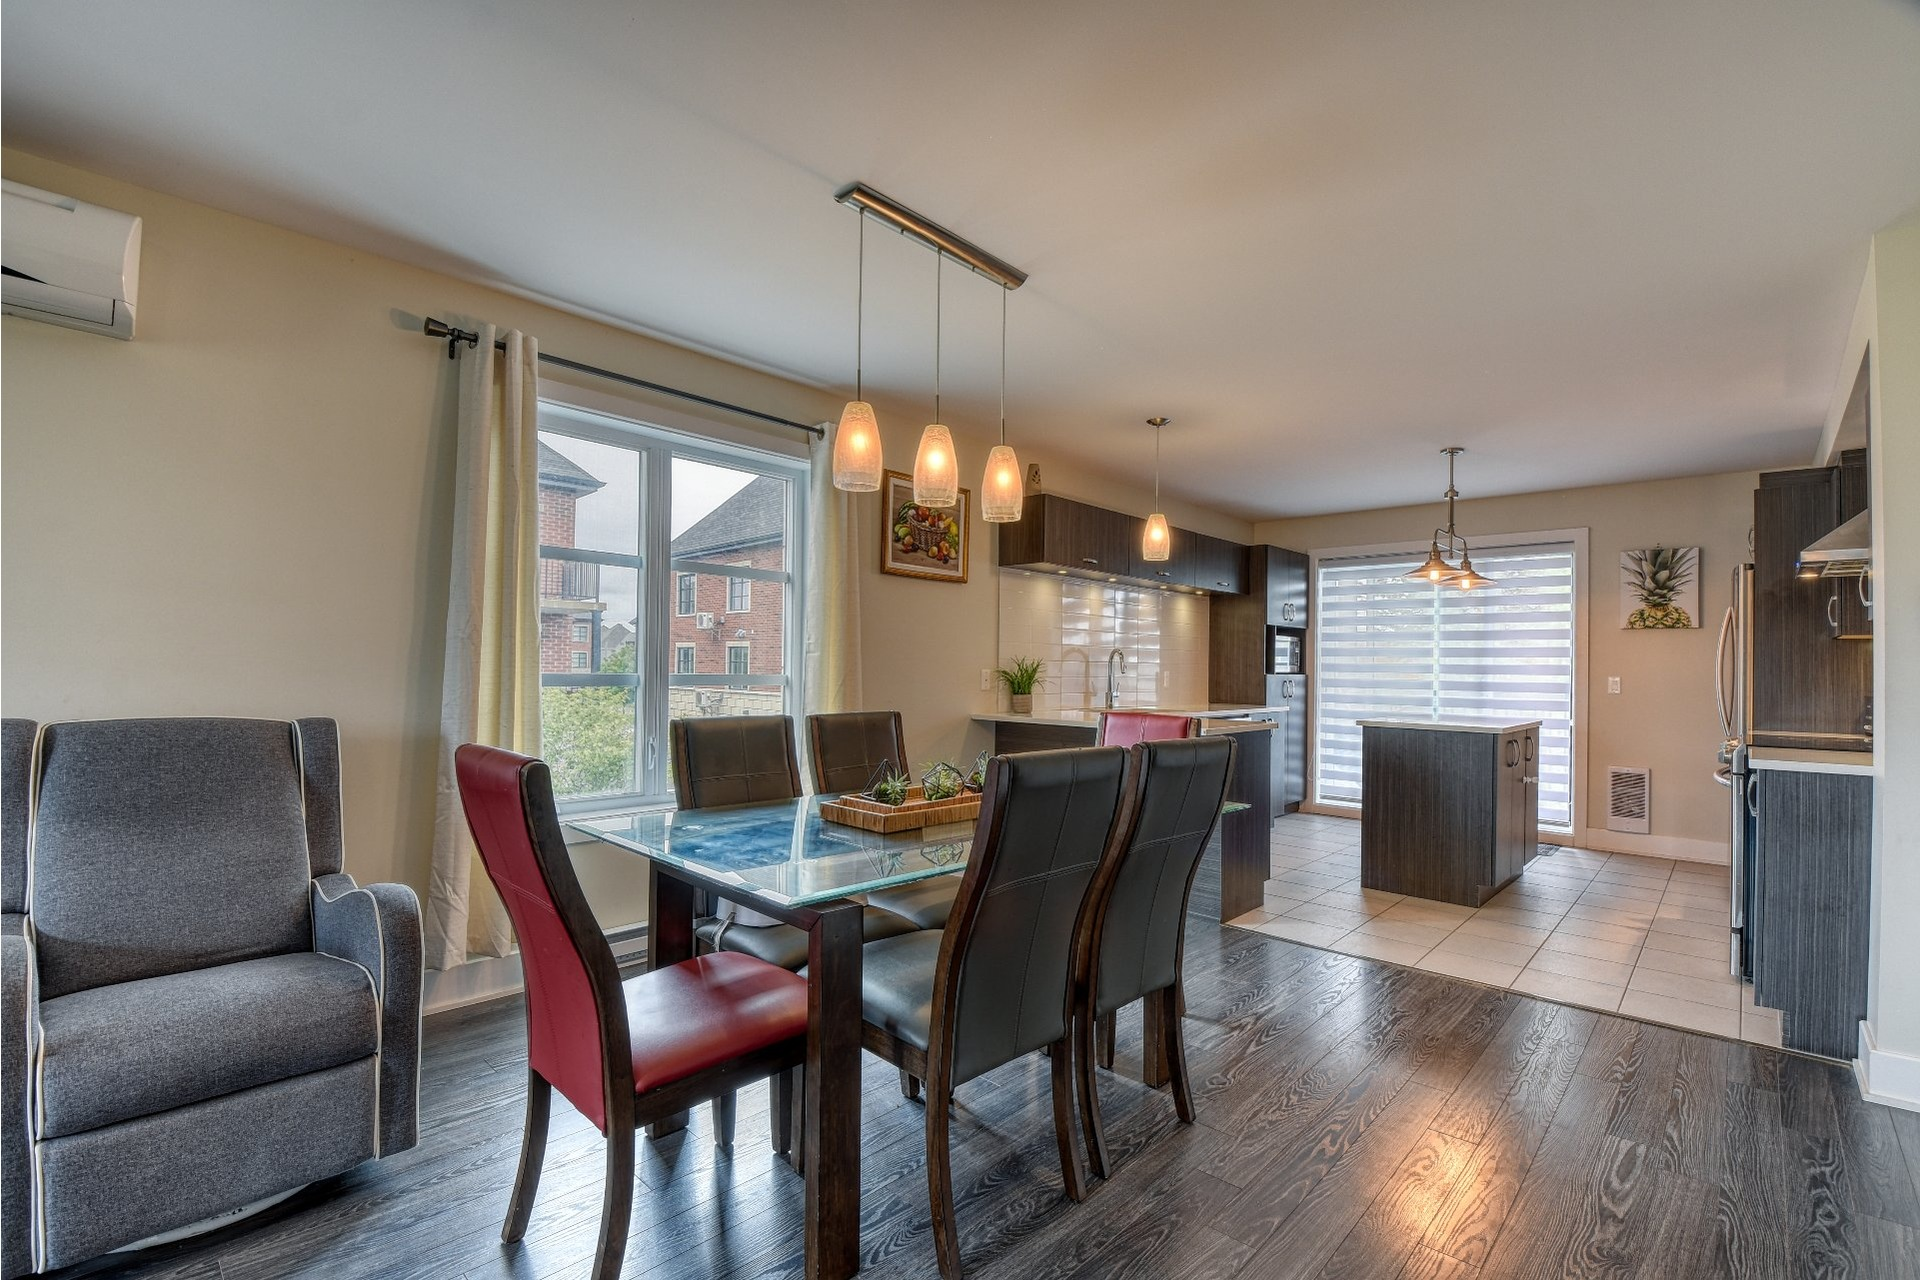 image 5 - Apartment For sale Duvernay Laval  - 6 rooms